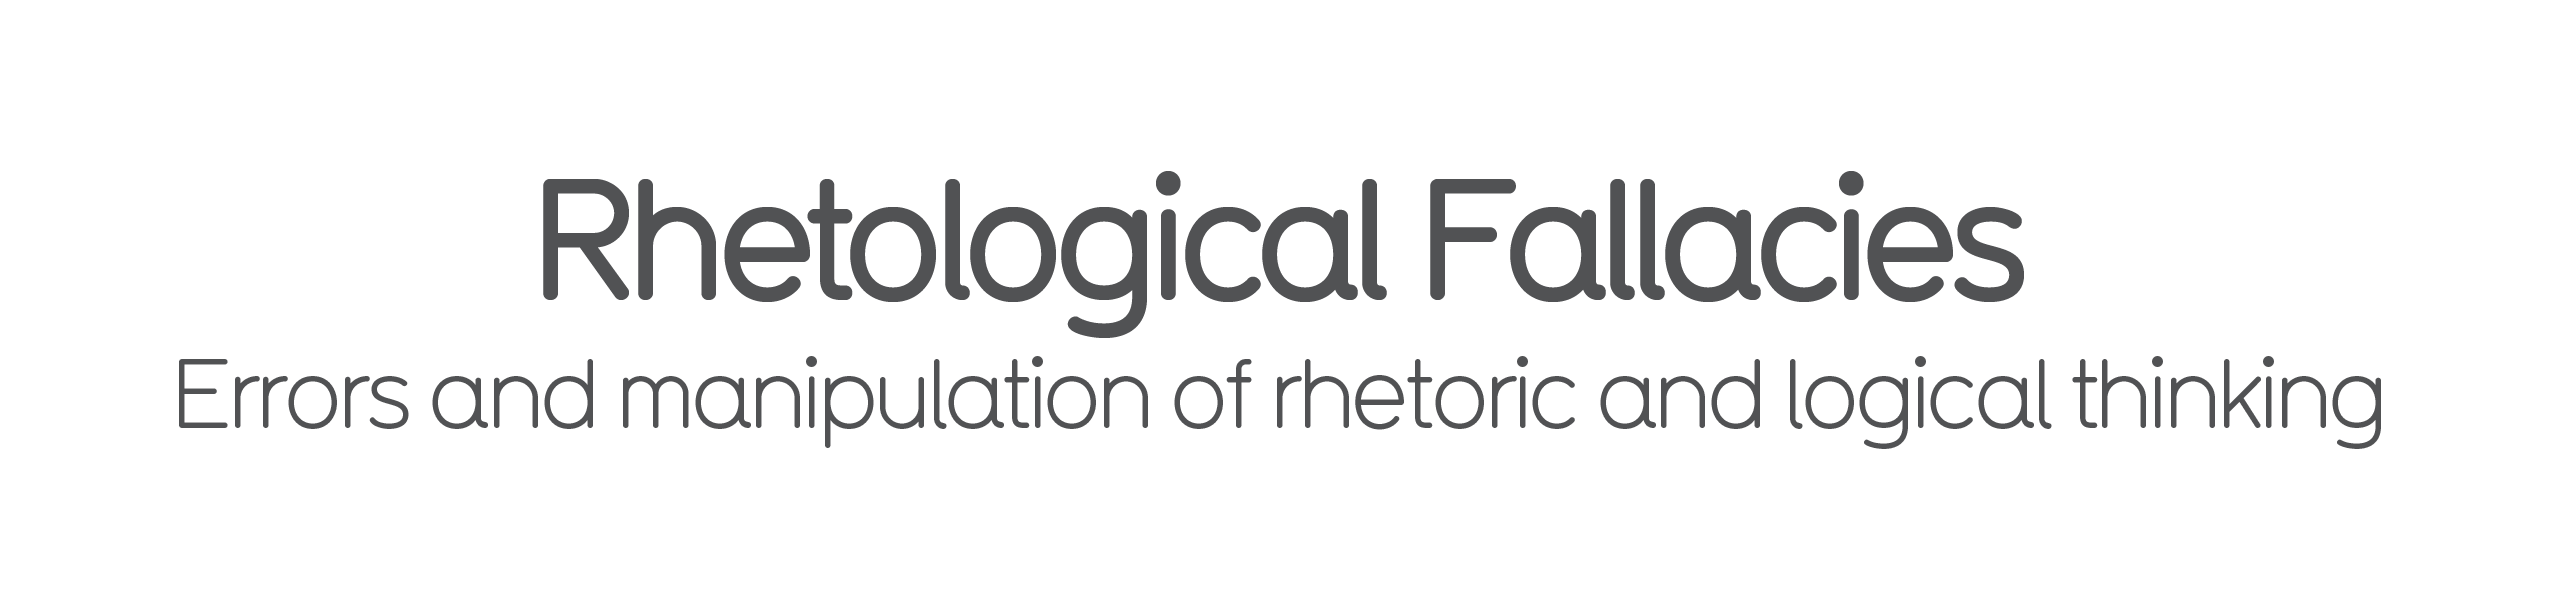 Rhetological Fallacies